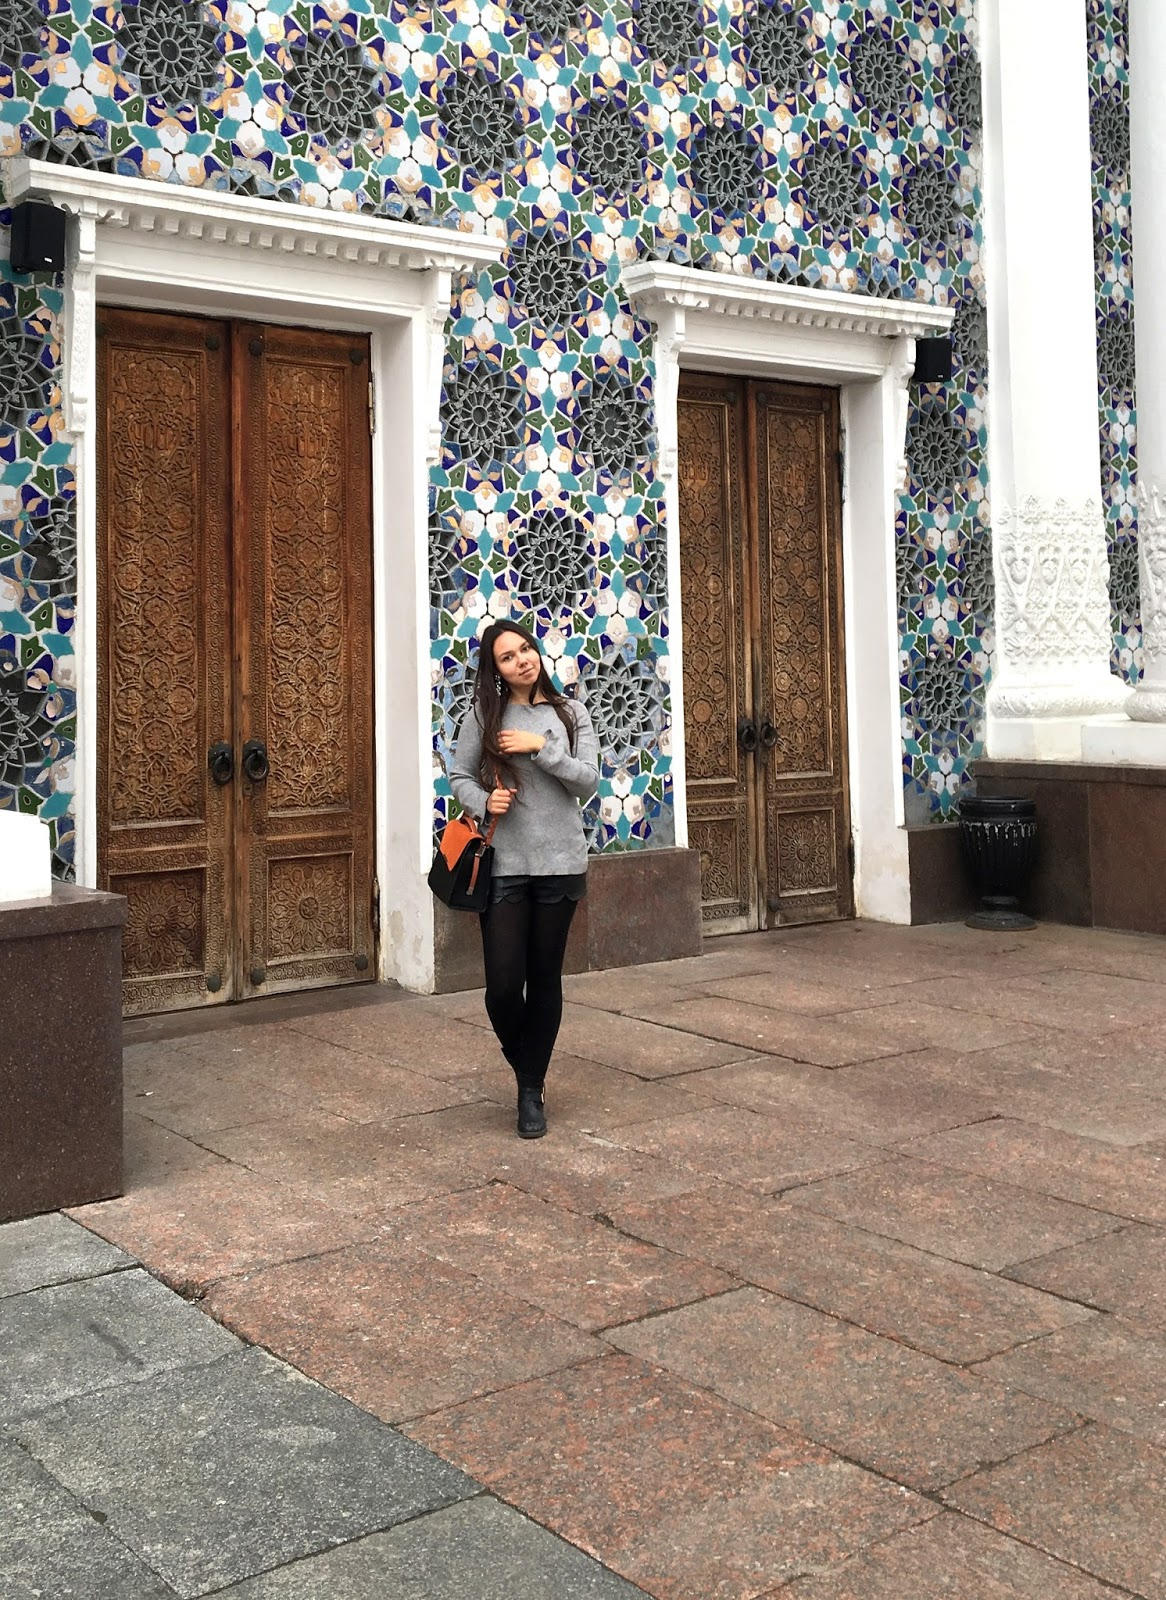 Outfitfotos in moskau